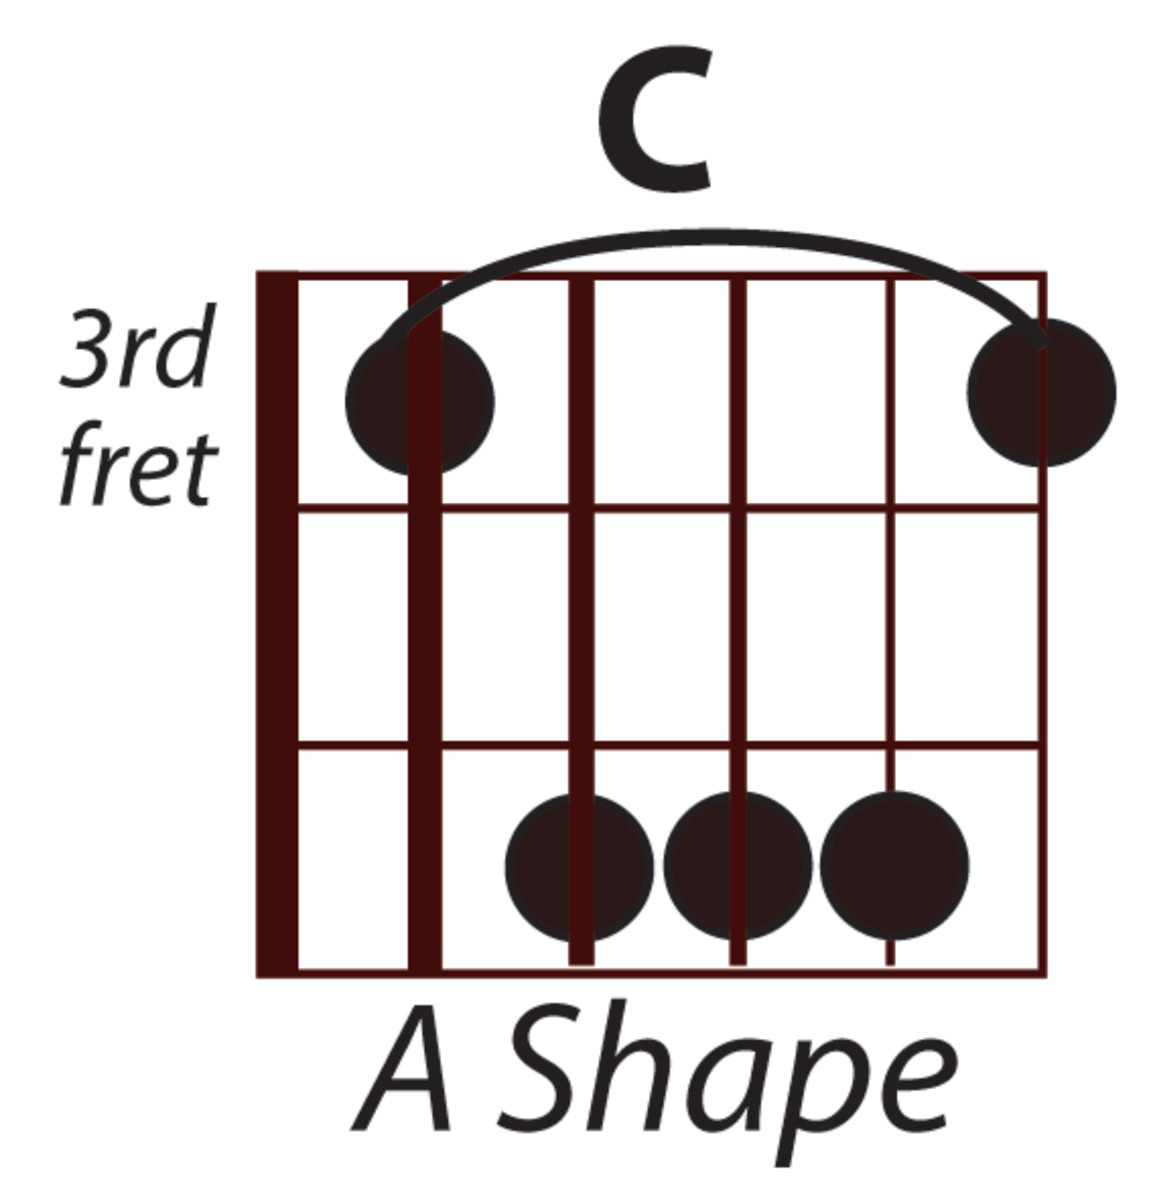 C Major using the Open A Hand Position